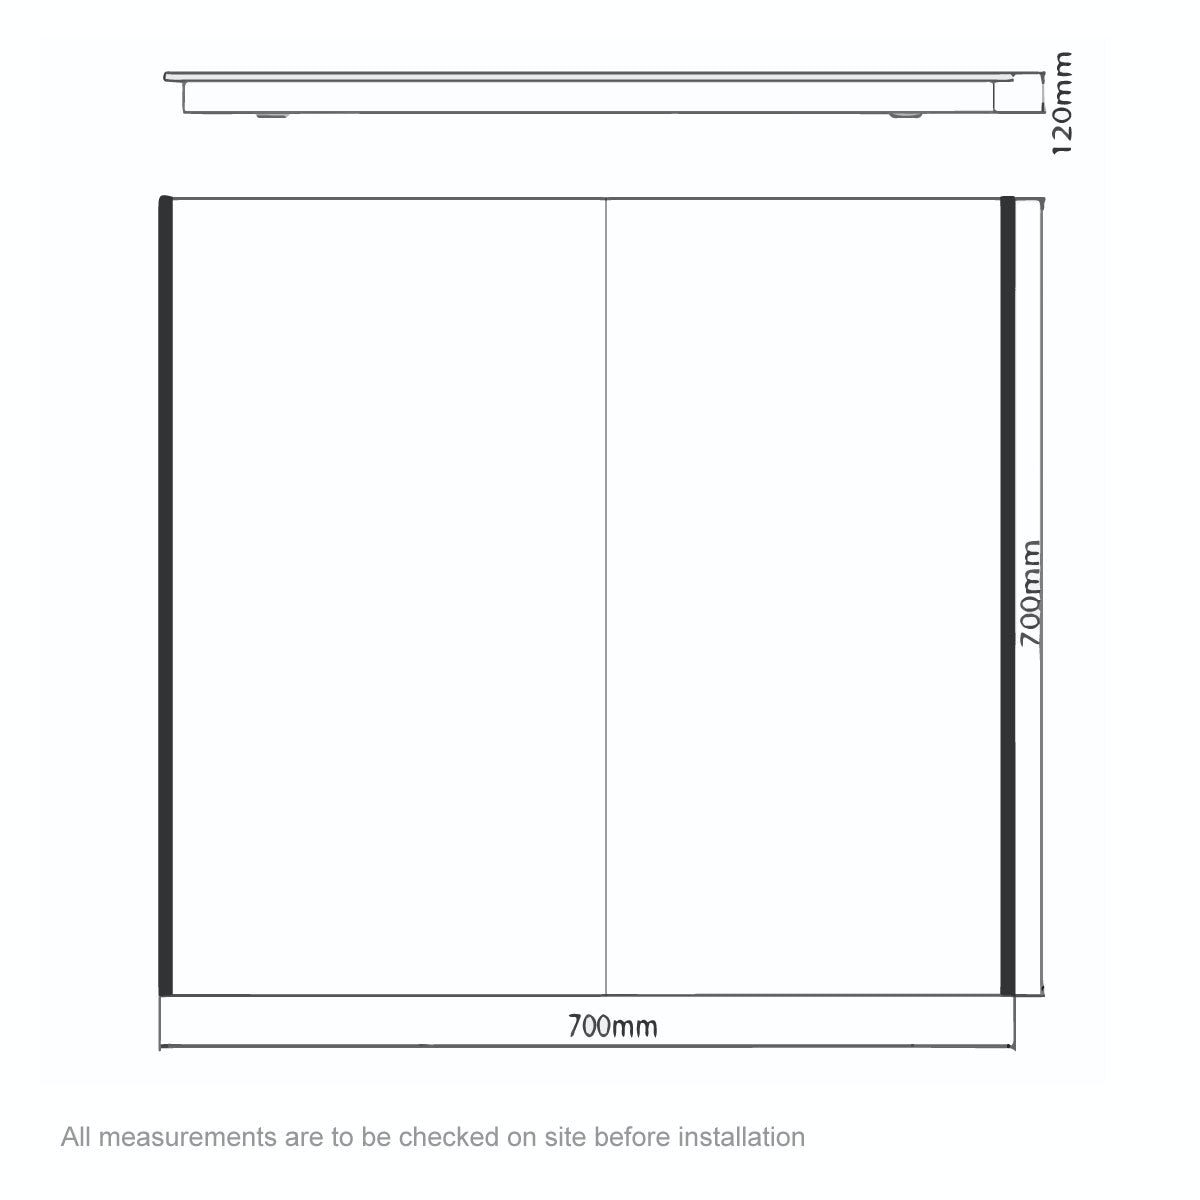 Dimensions for Mode Kiana double diffused LED mirror cabinet